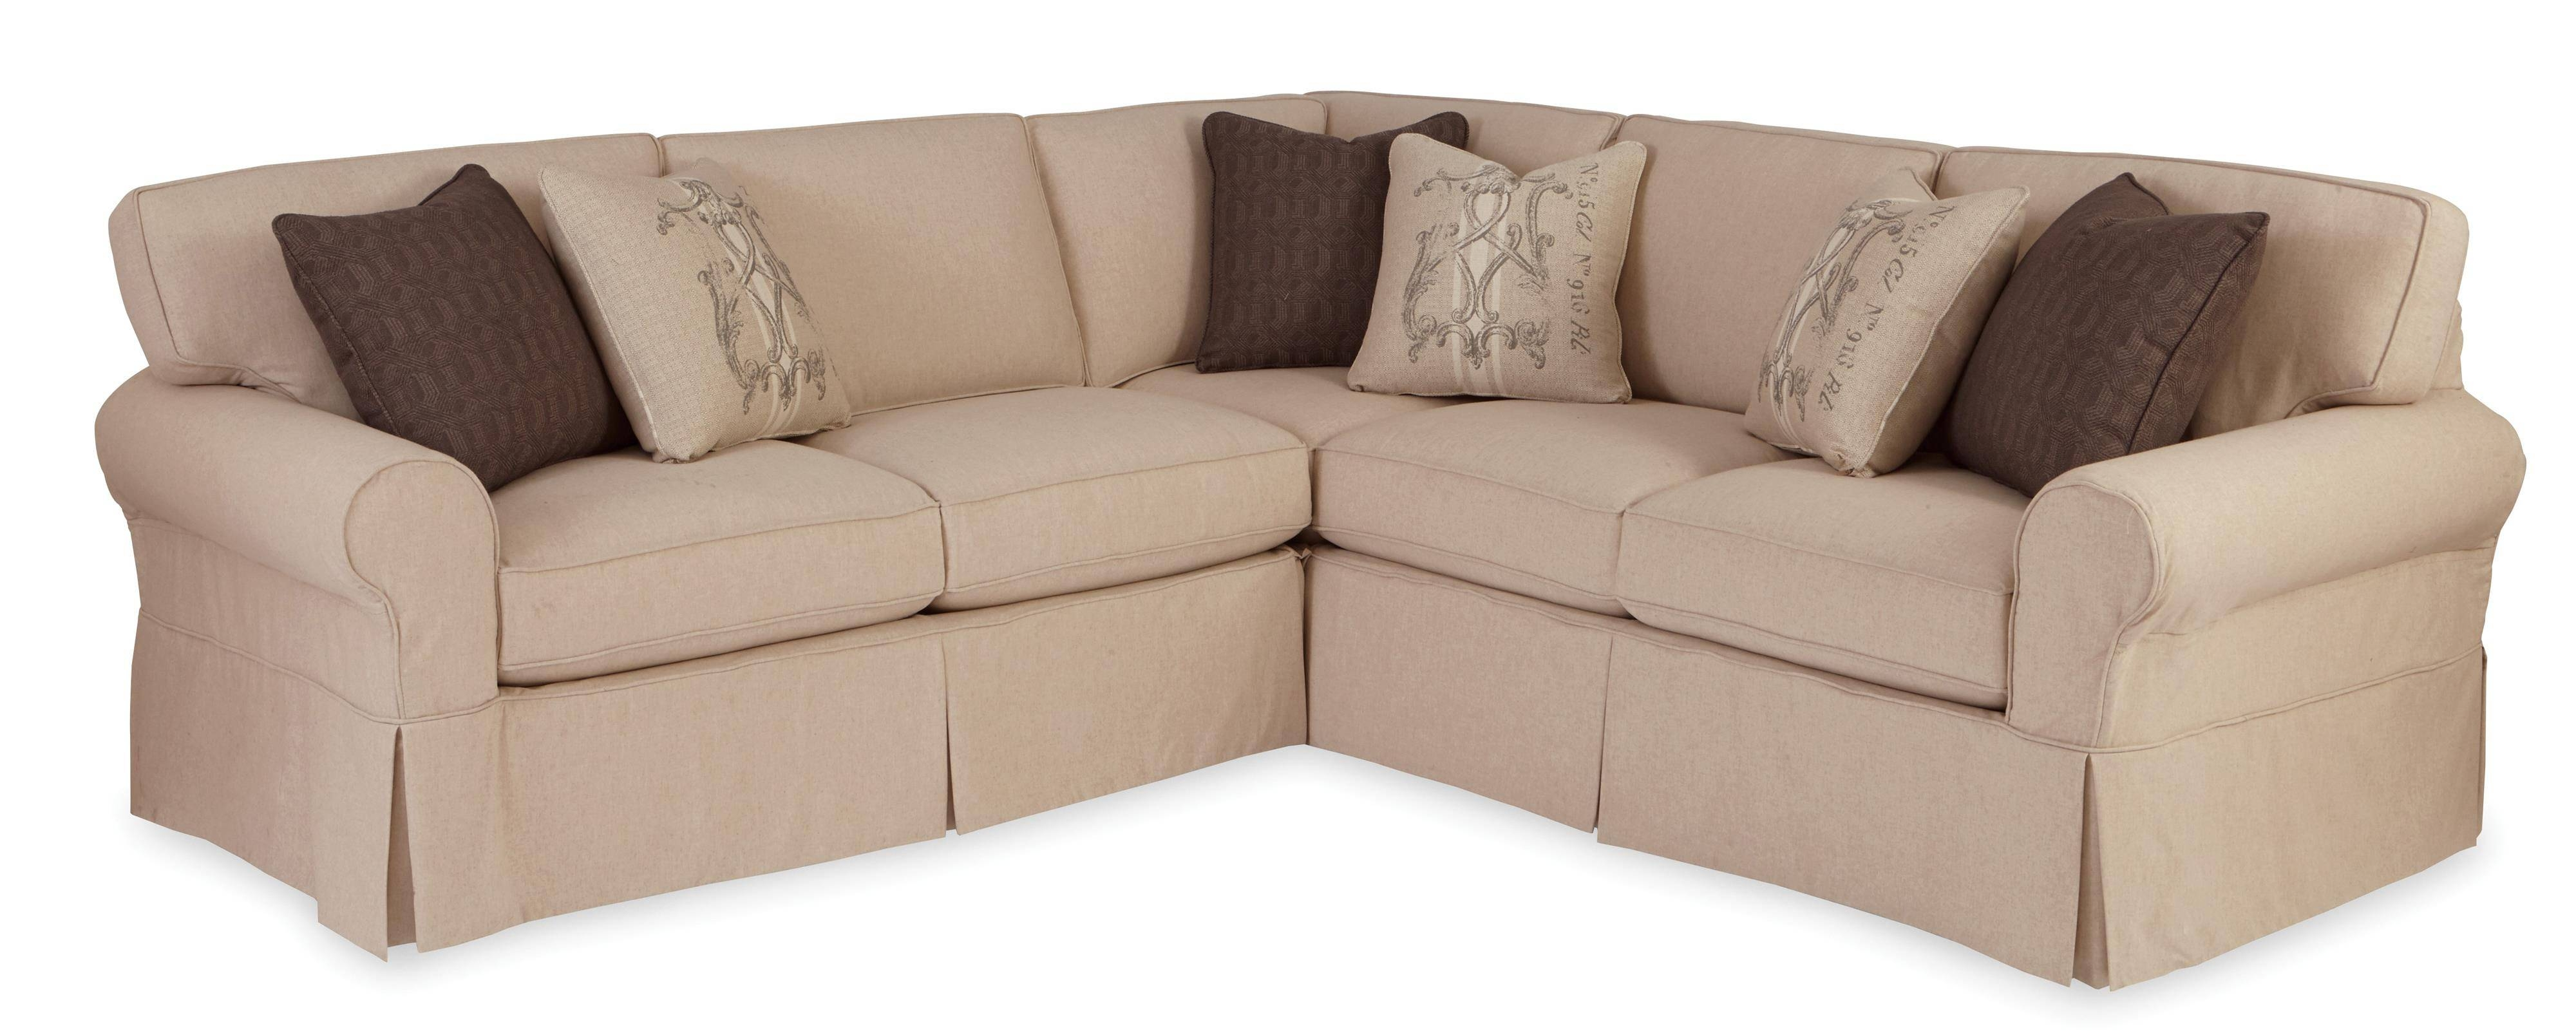 Furniture: Pretty Slipcovered Sectional Sofa For Comfy Your Living inside 10 Piece Sectional Sofa (Image 15 of 30)